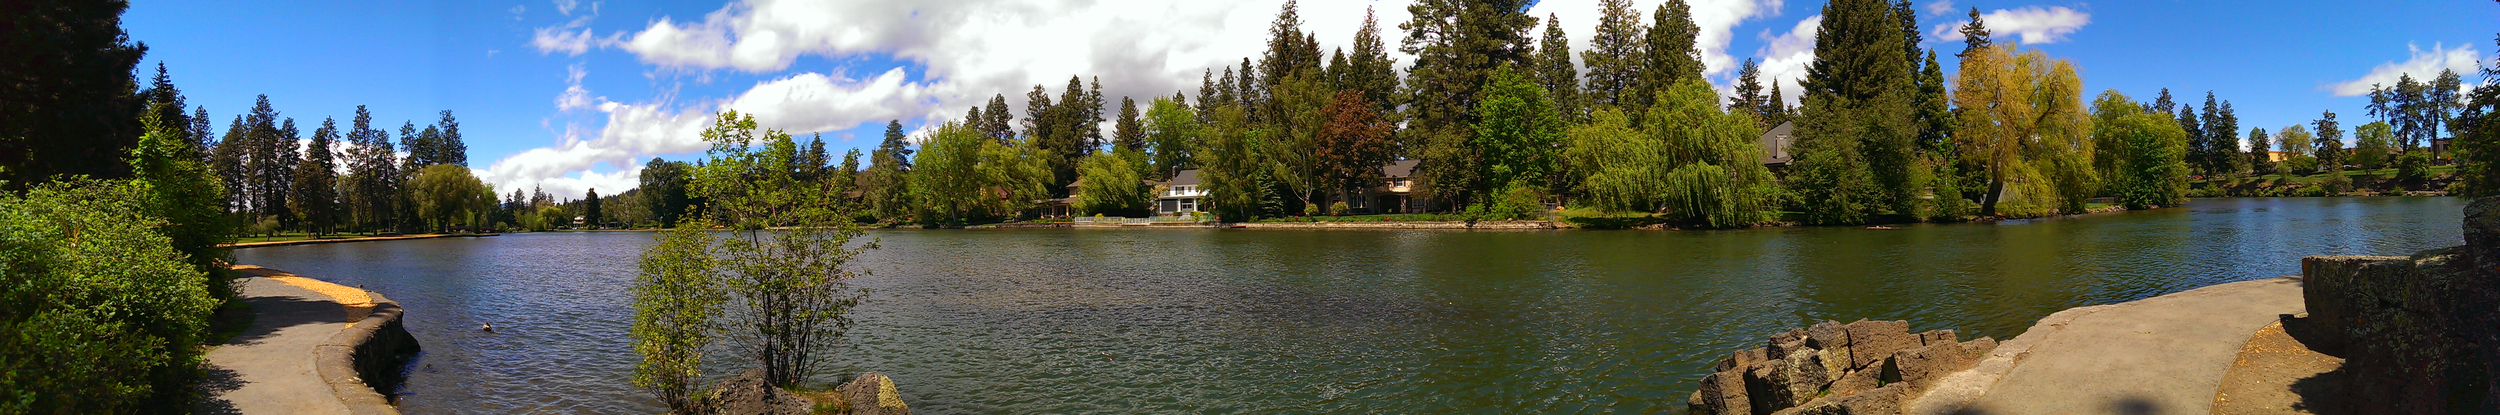 Bend Oregon Drake Park Buy Home